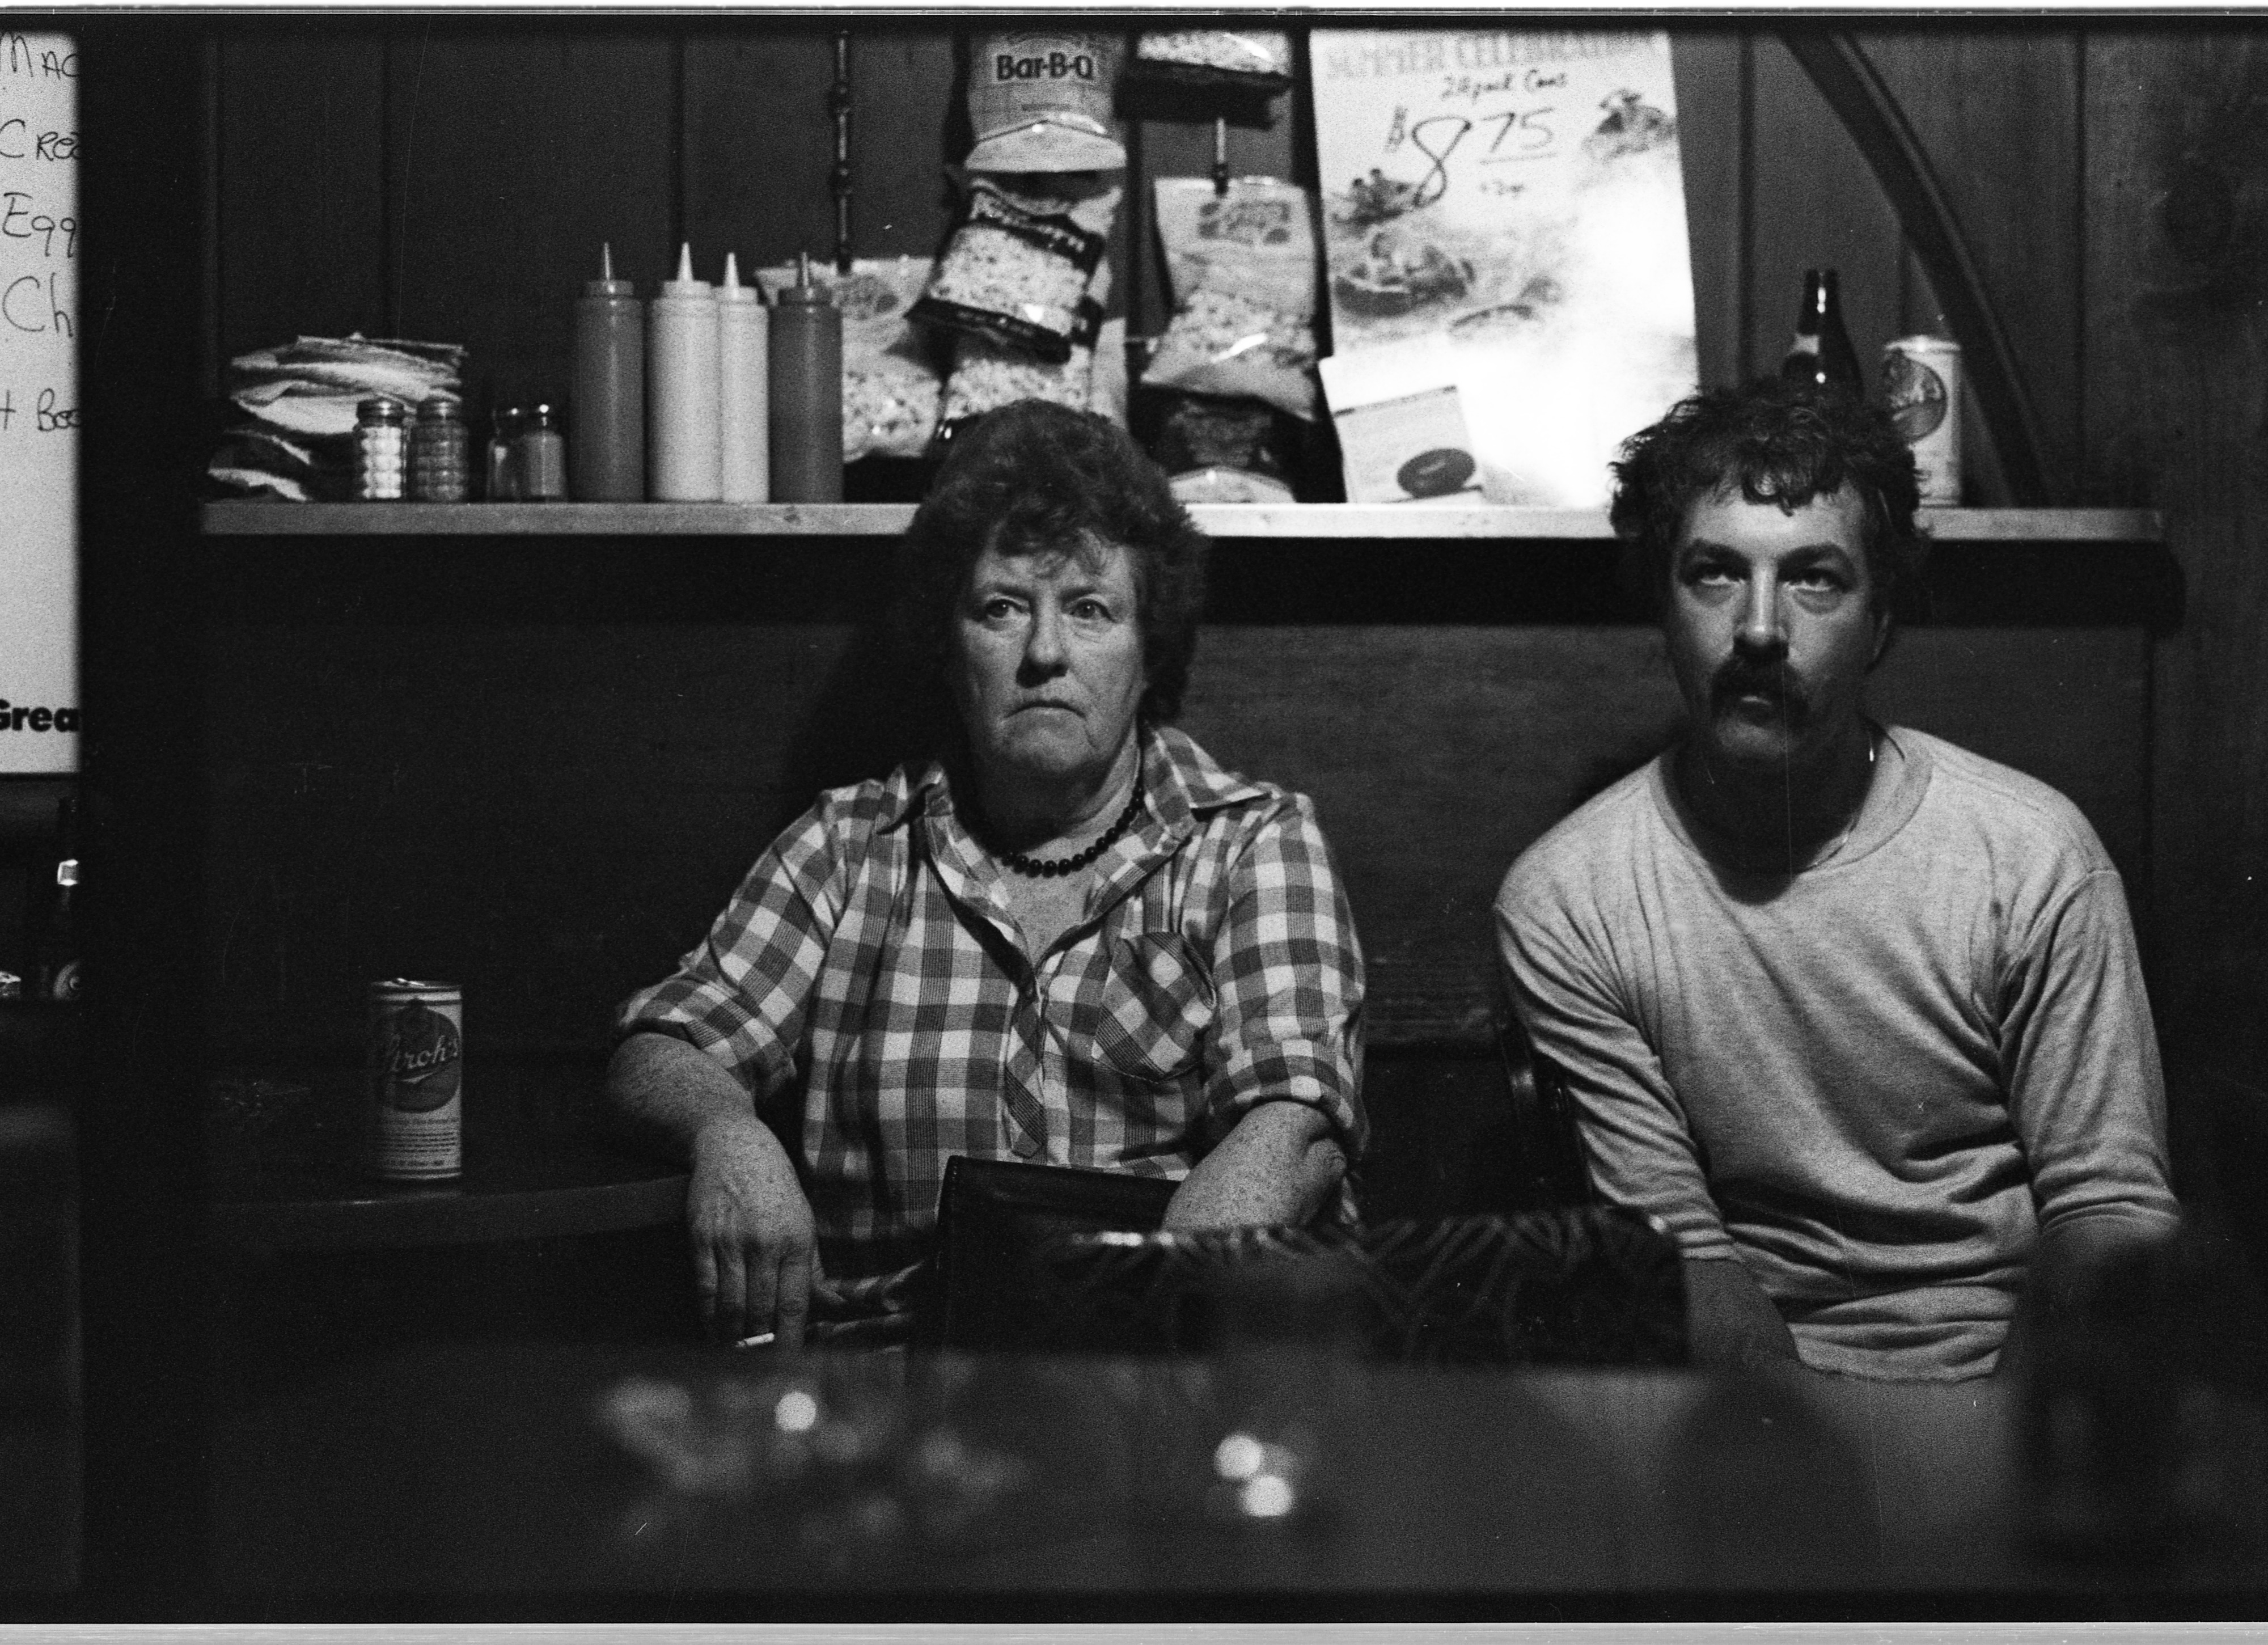 Customers Contemplate Stadium Tavern Closing Down, September 1985 image